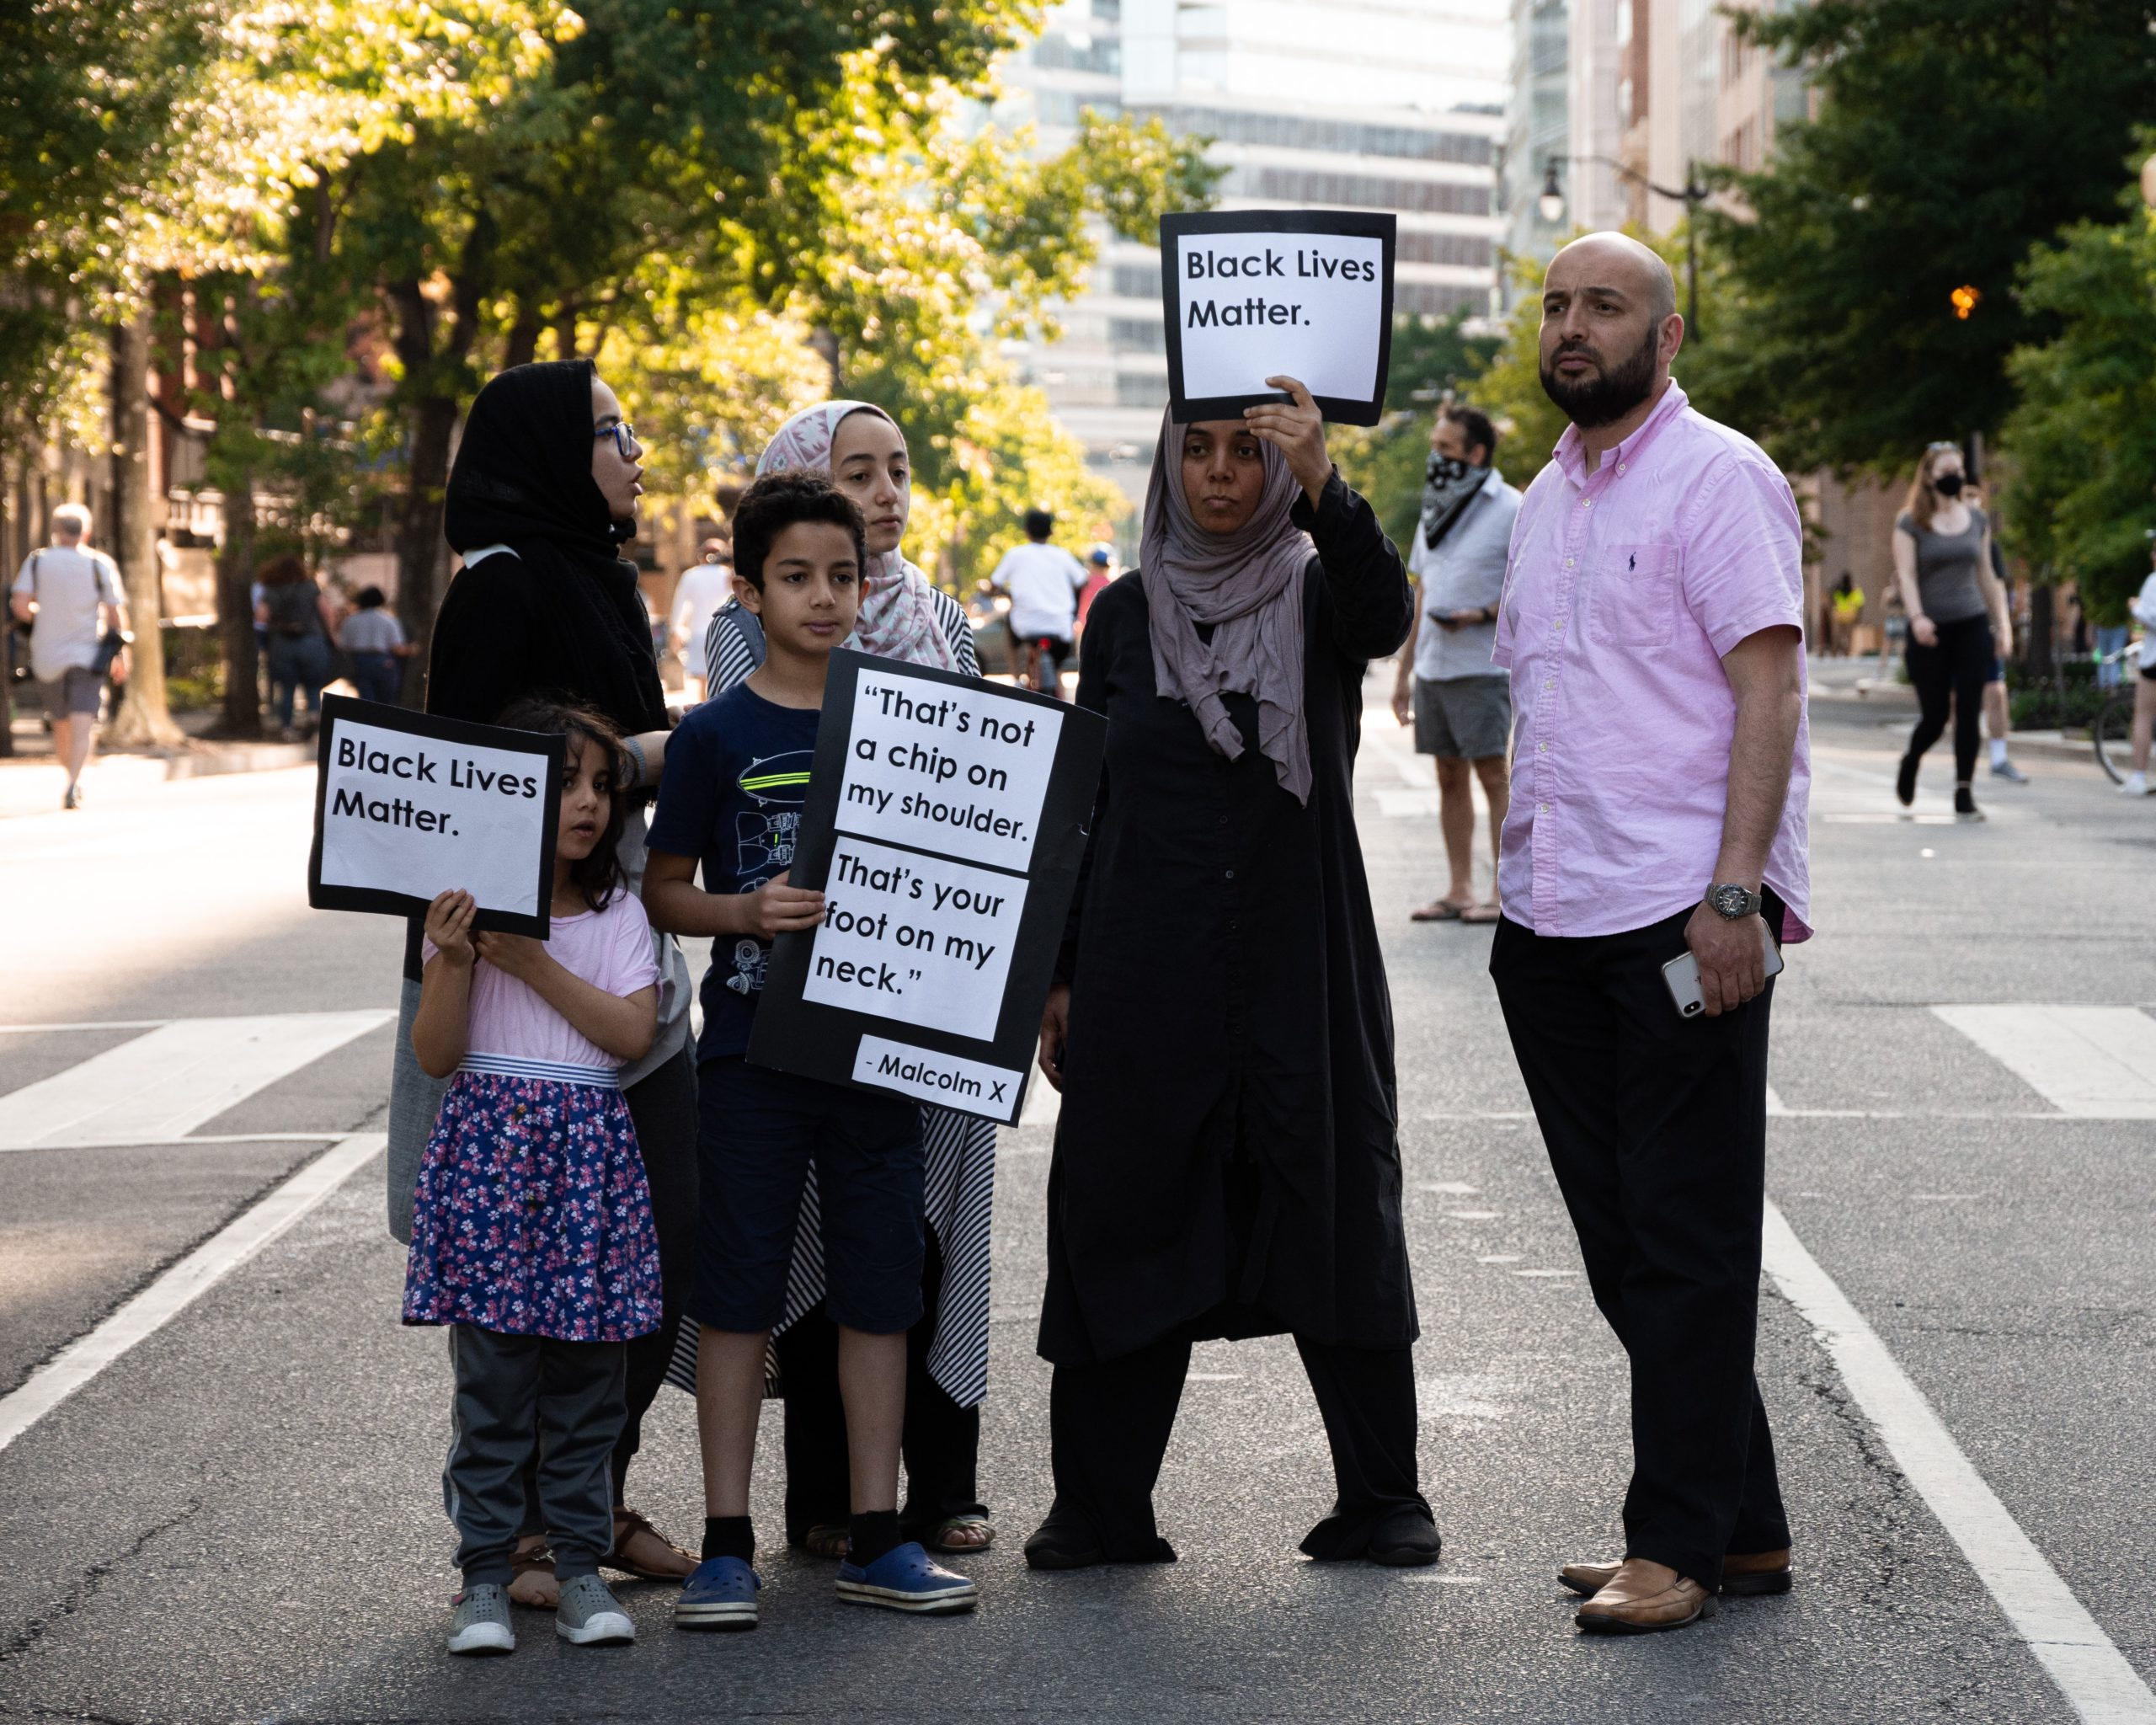 Arabic family with signs at a black lives matter protest